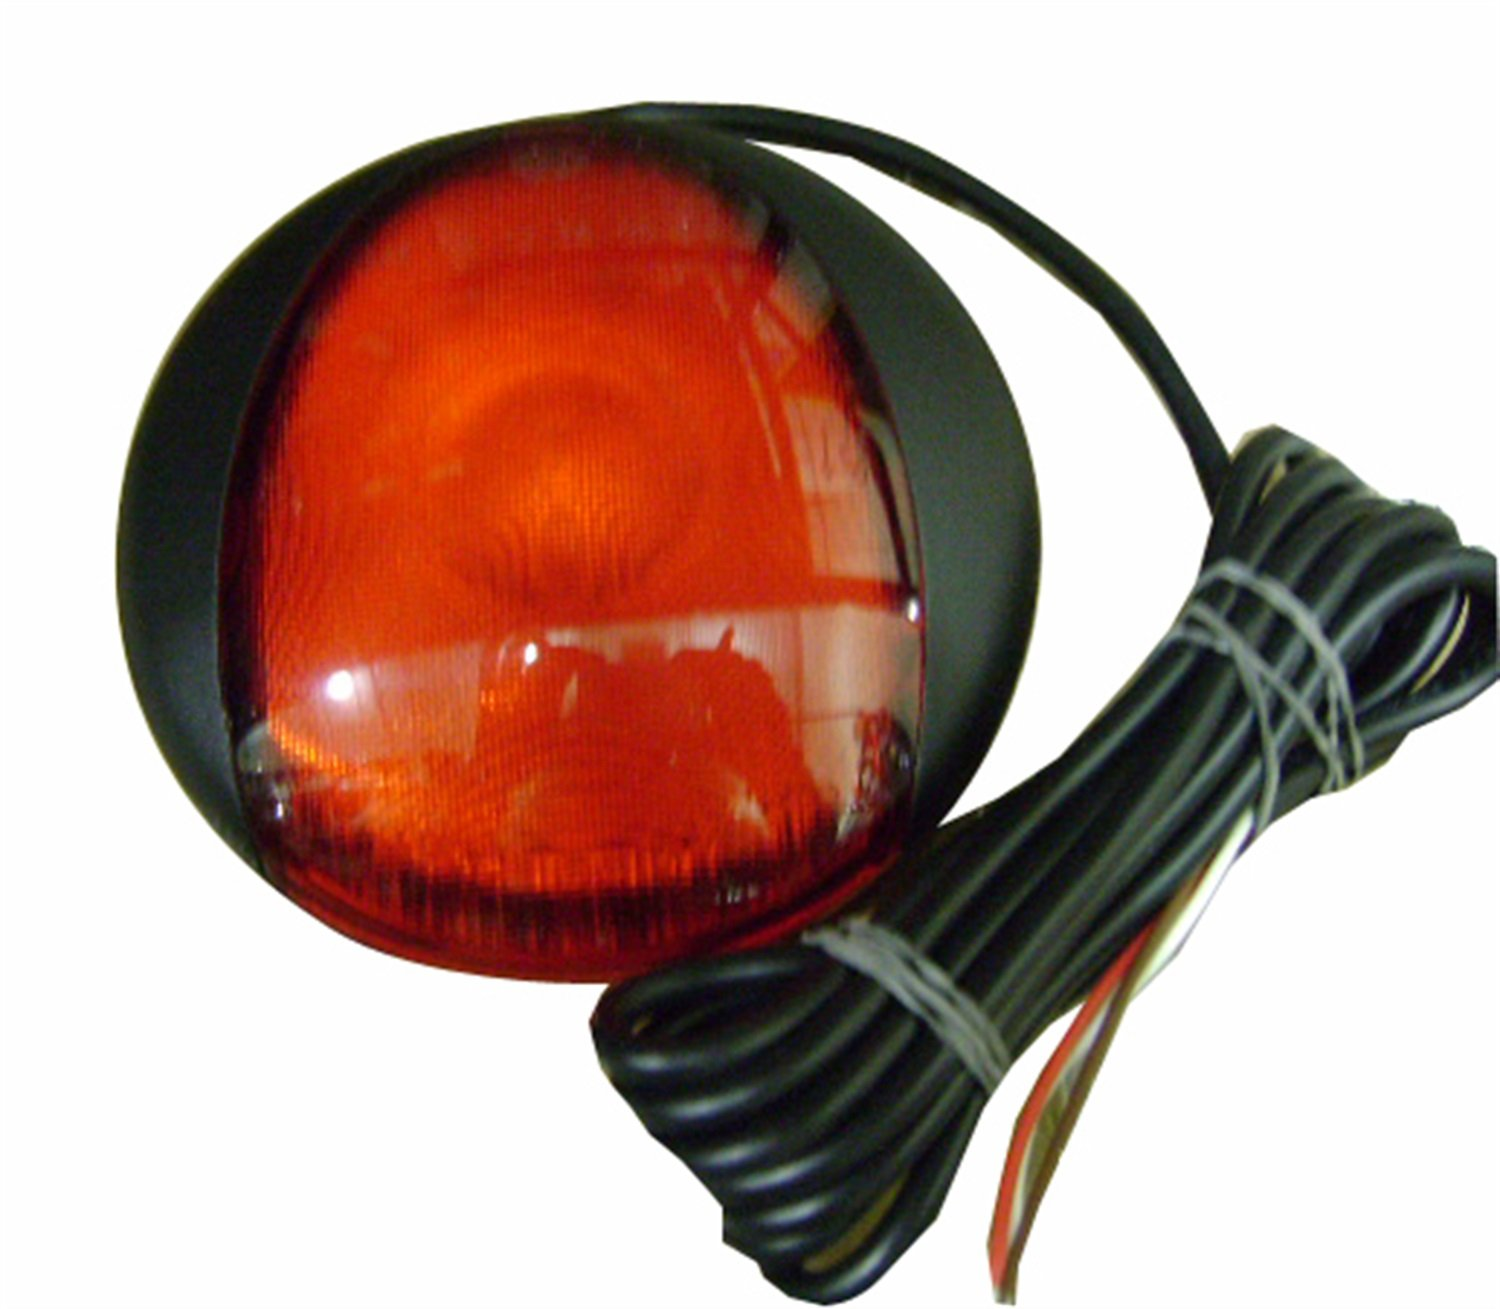 HELLA 959821301 EuroLED Red Stoplamp and Tailamp with Black Bezel